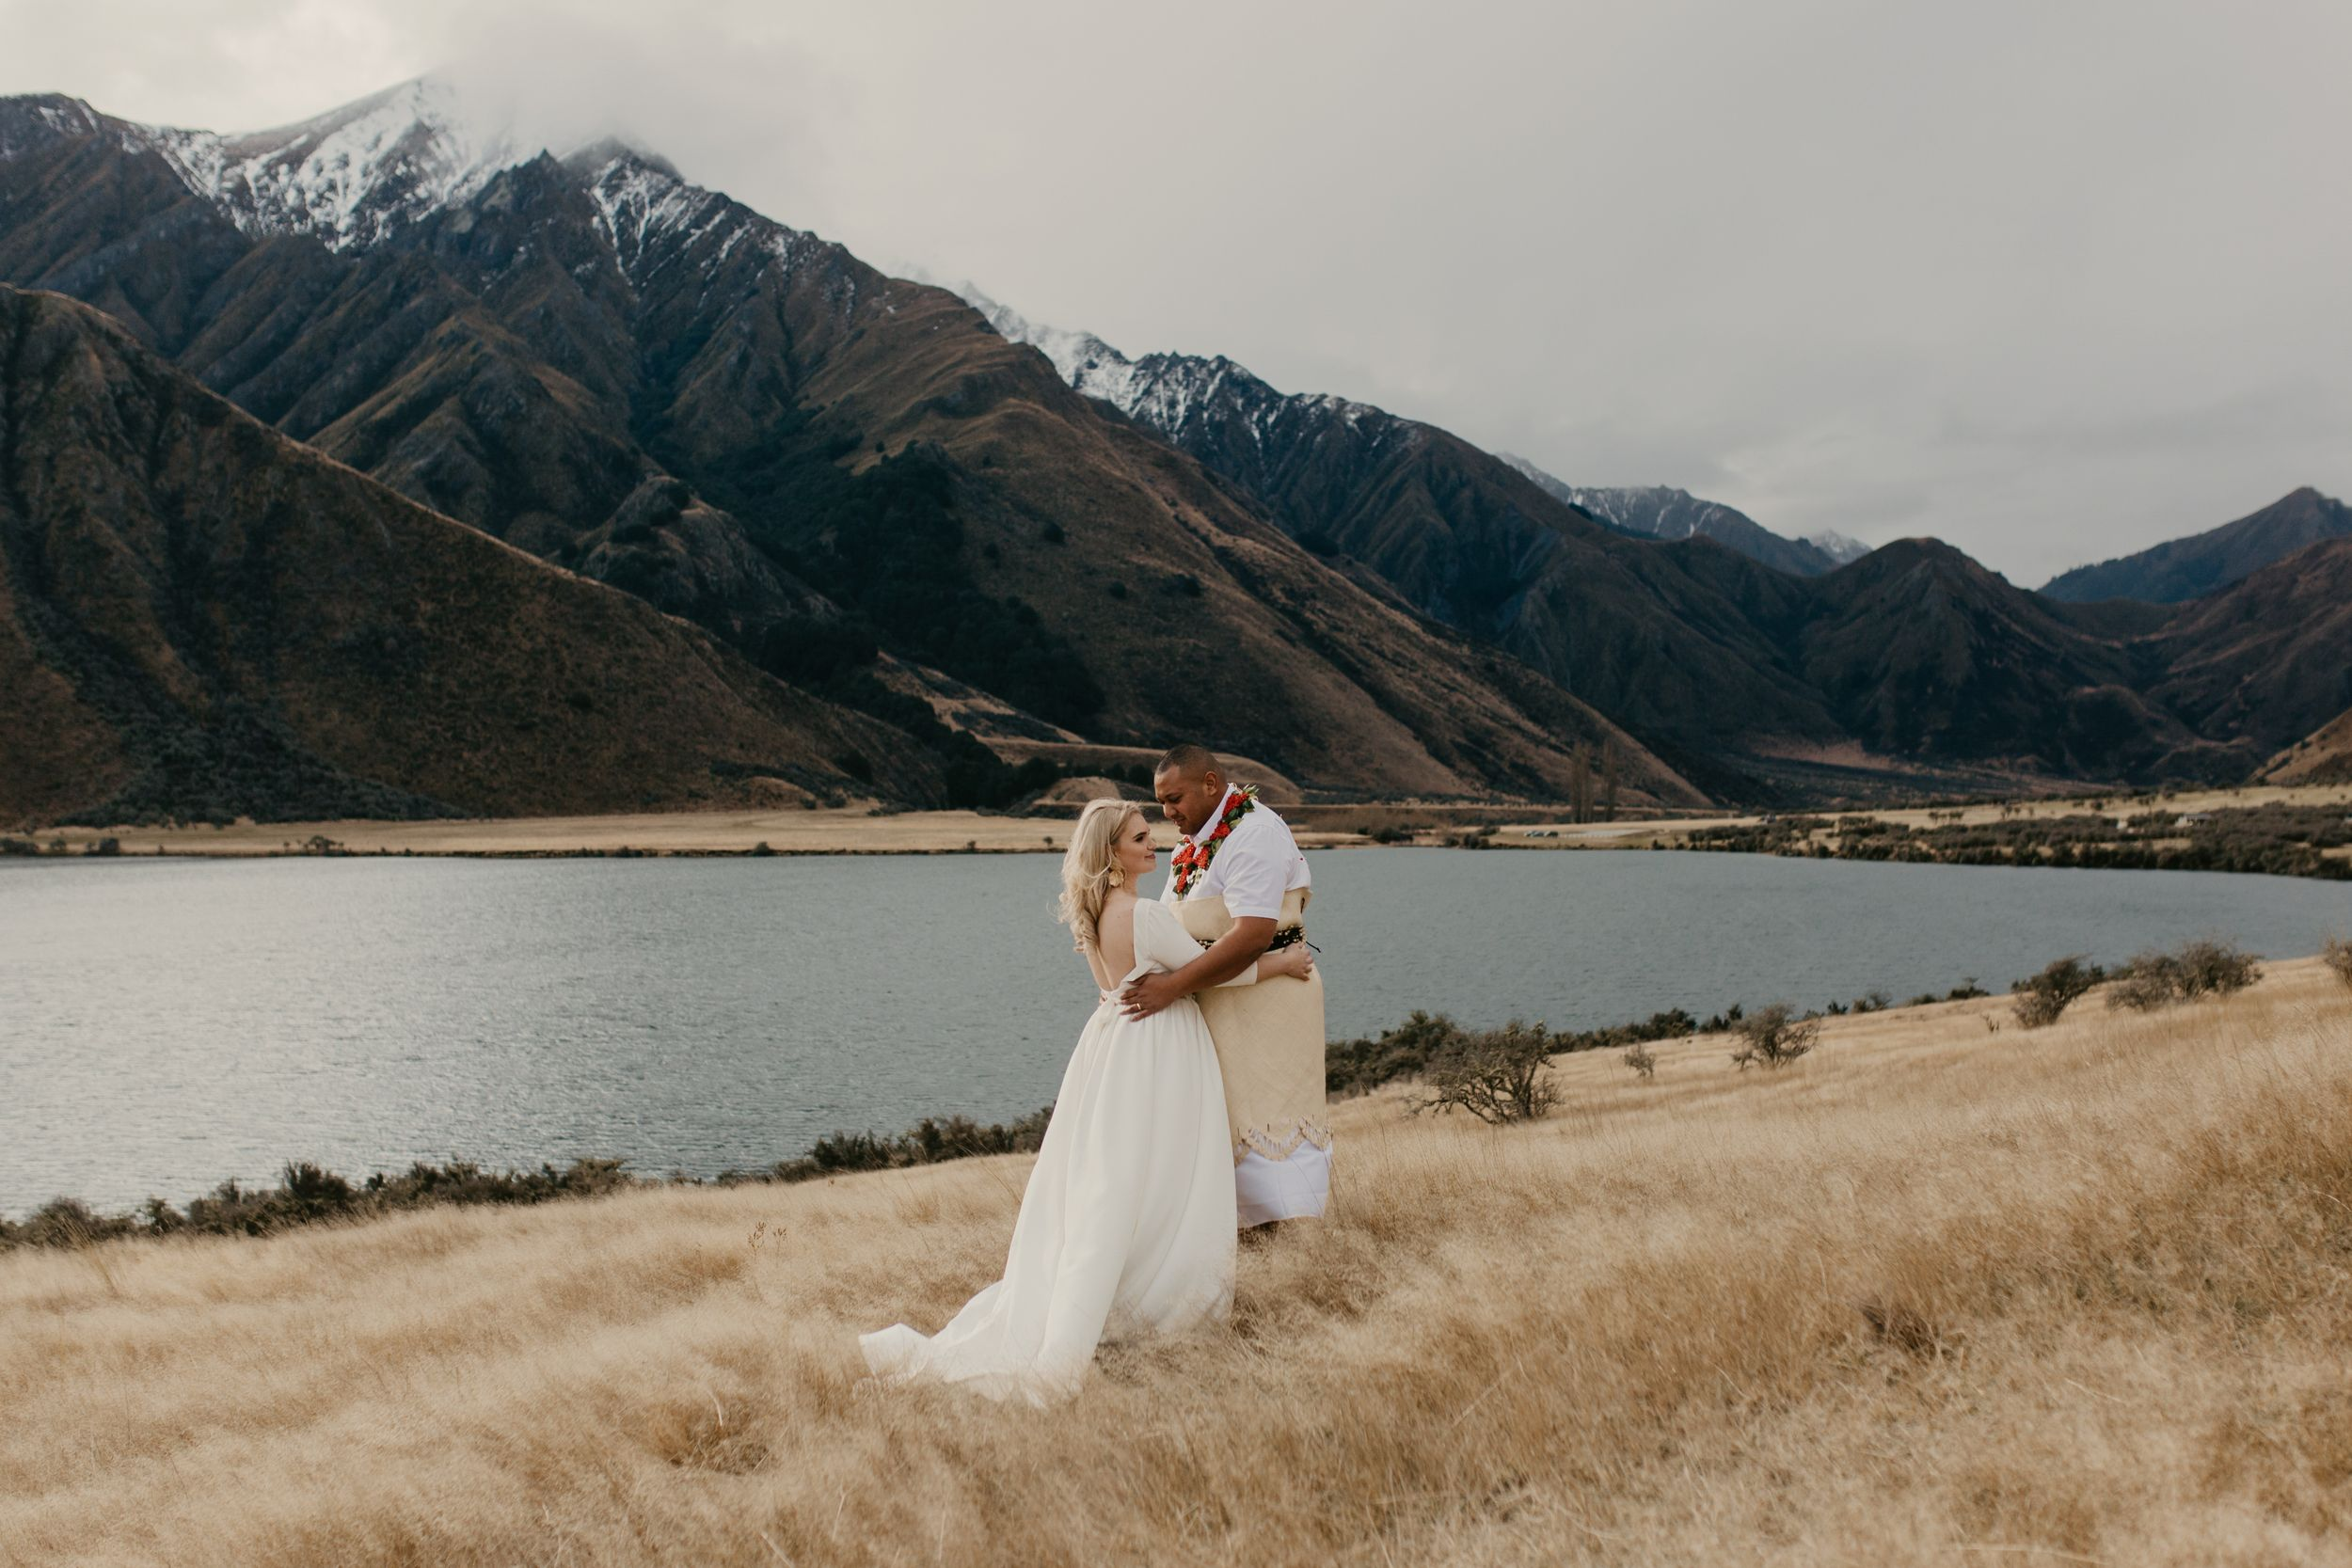 queenstown-elopement-photographer-destination-wedding